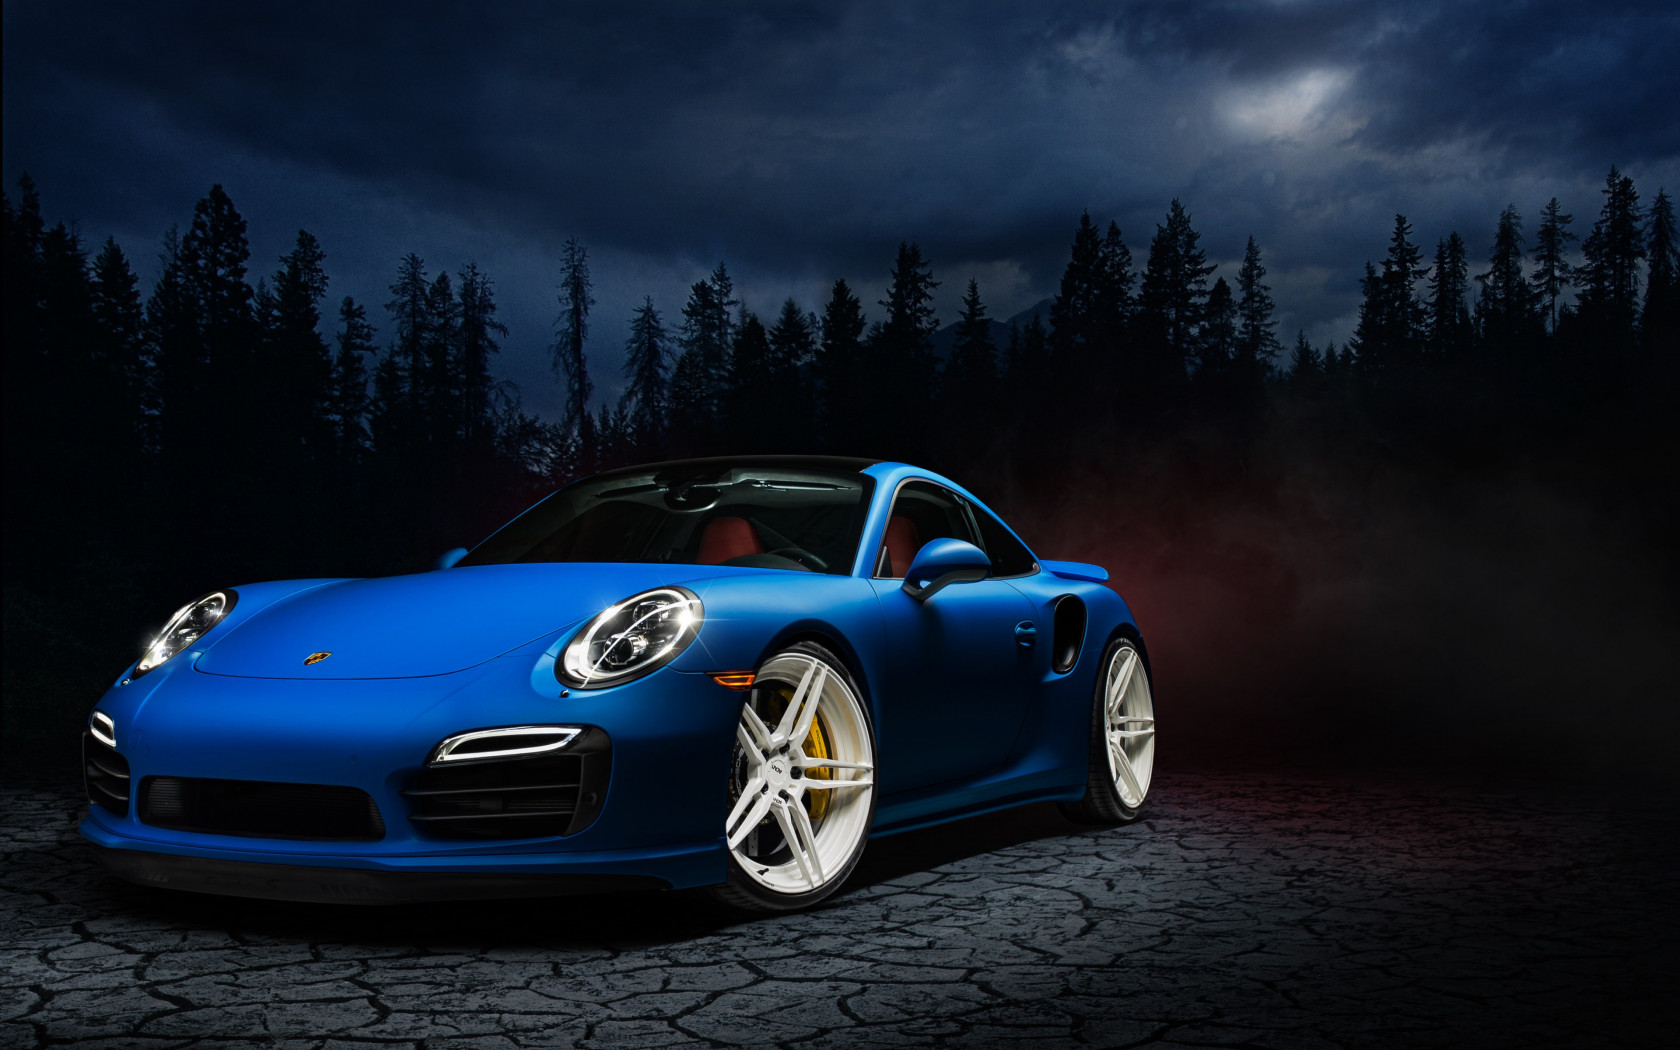 Porsche 911 blue wallpaper 1680x1050